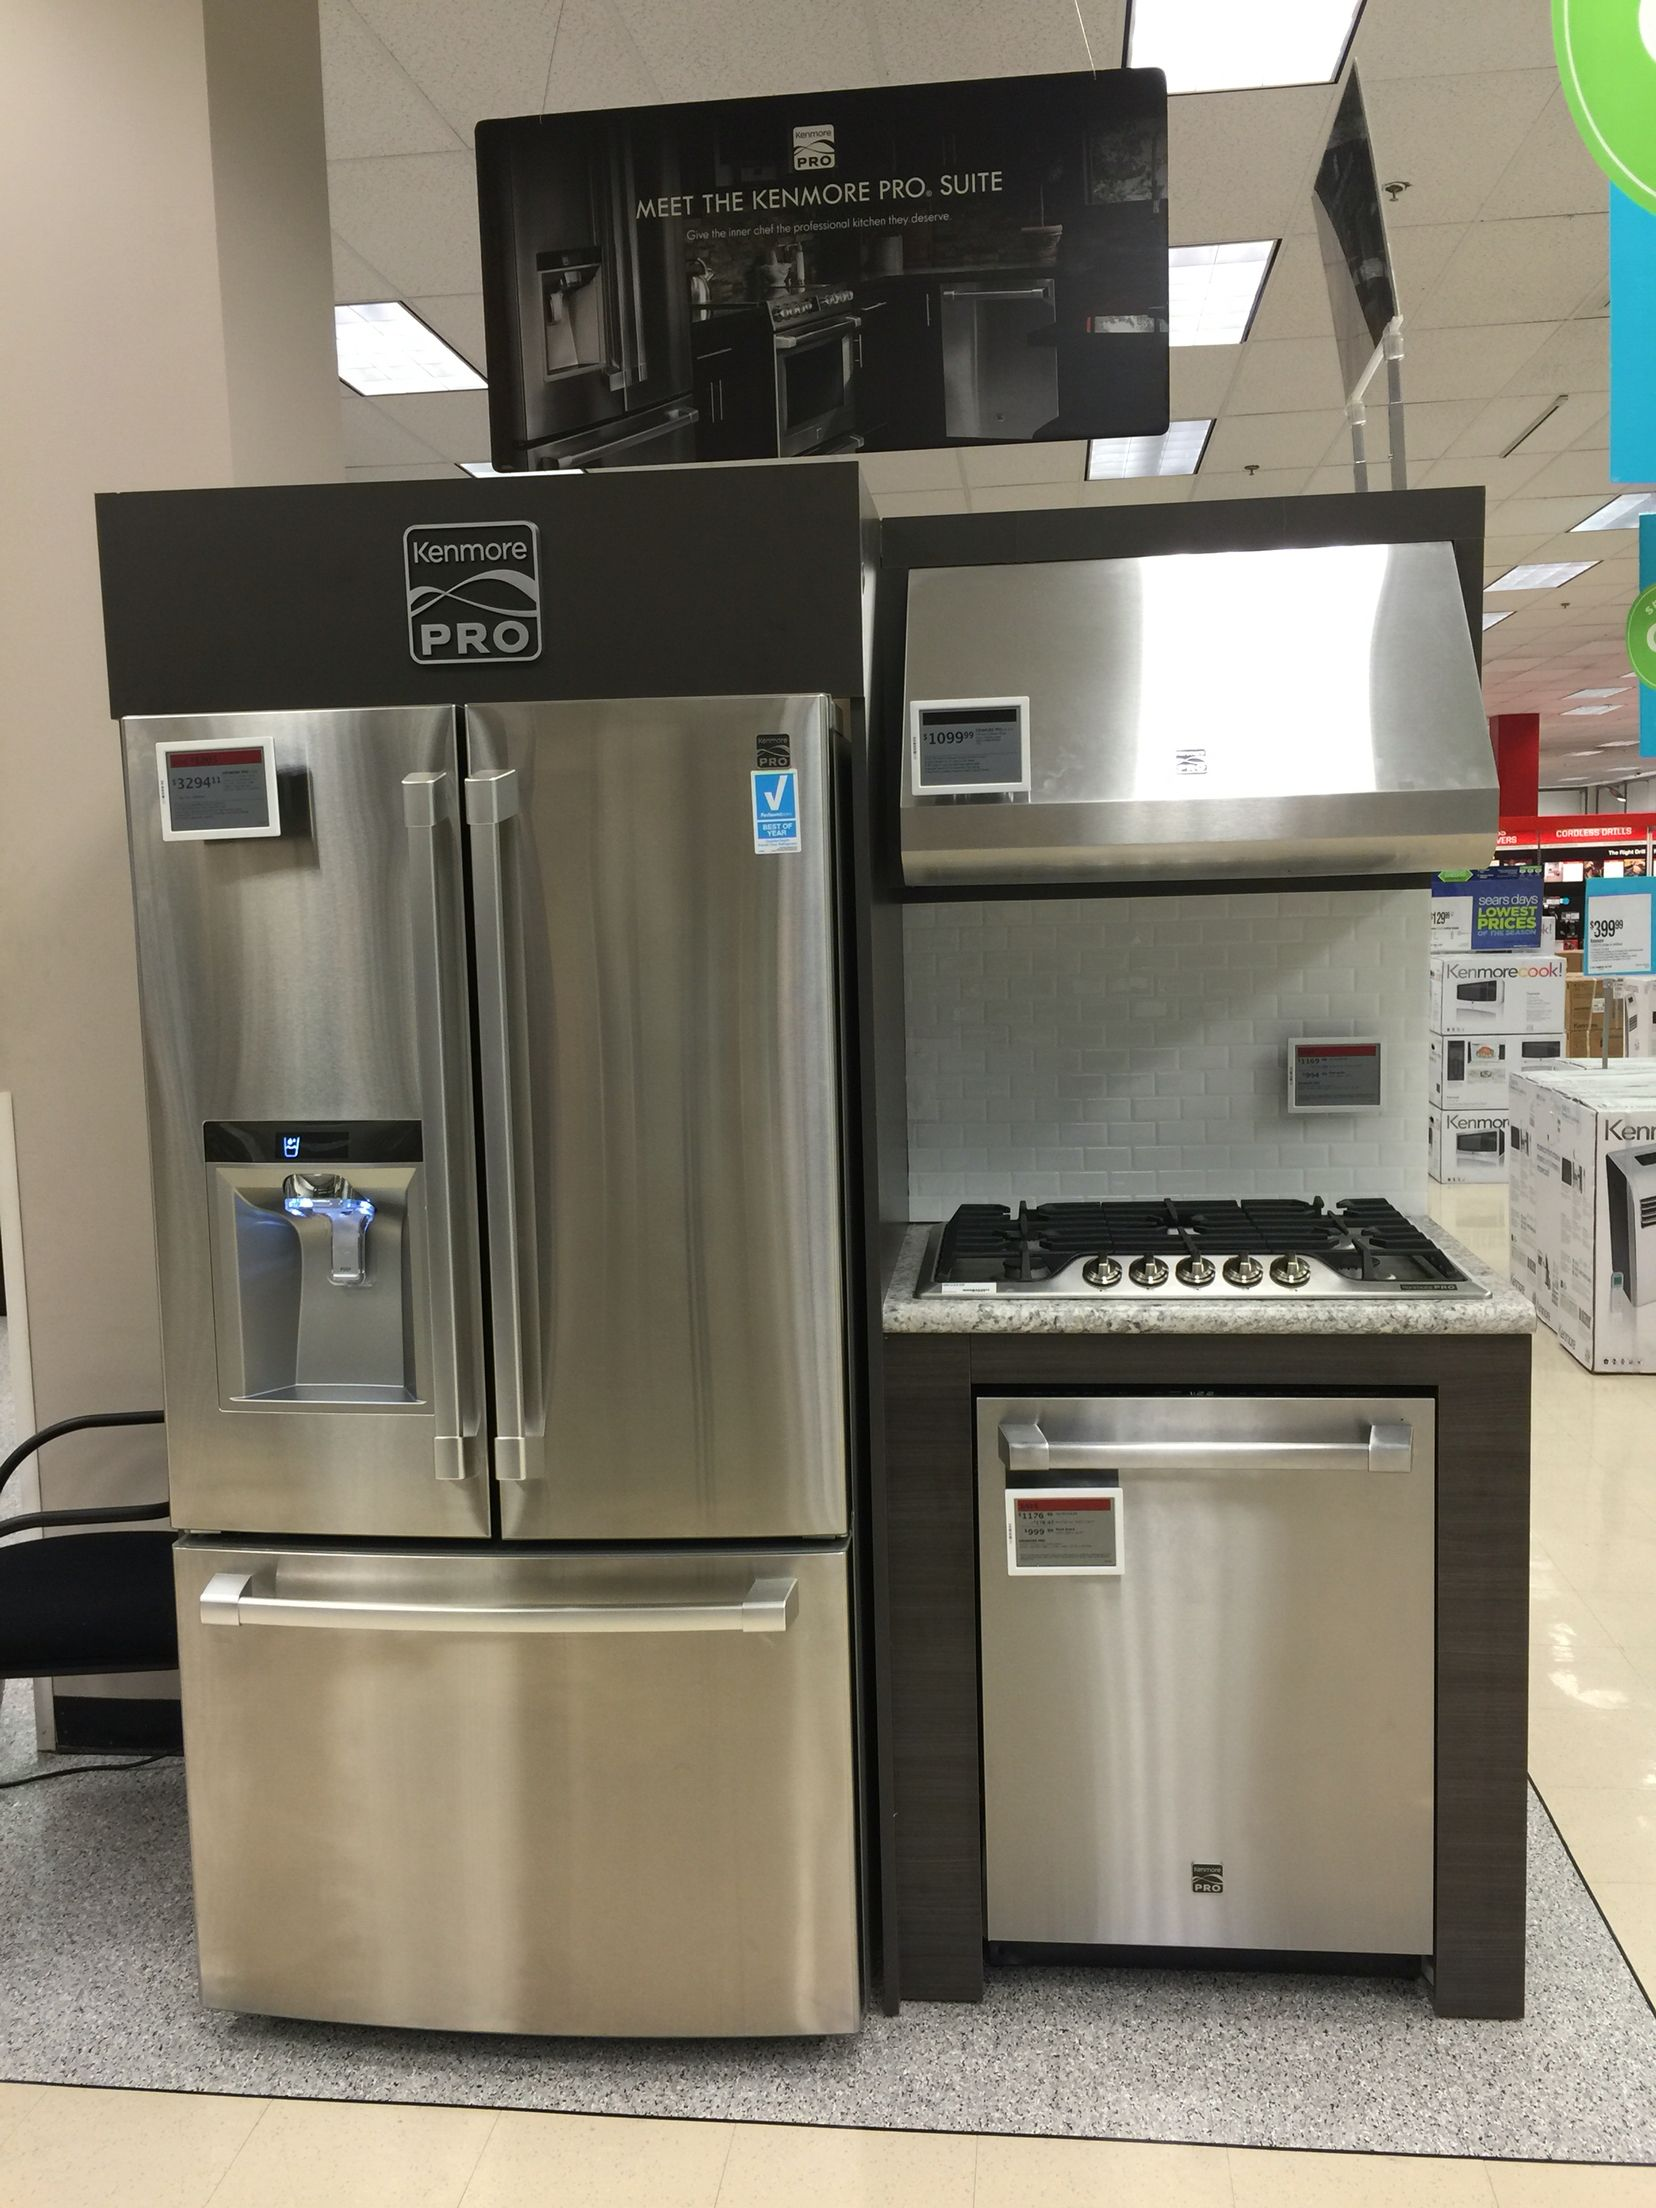 Kenmore Pro Only Sears Sears Kitchen Remodel Kitchen Appliance Packages Kitchen Remodel Pictures